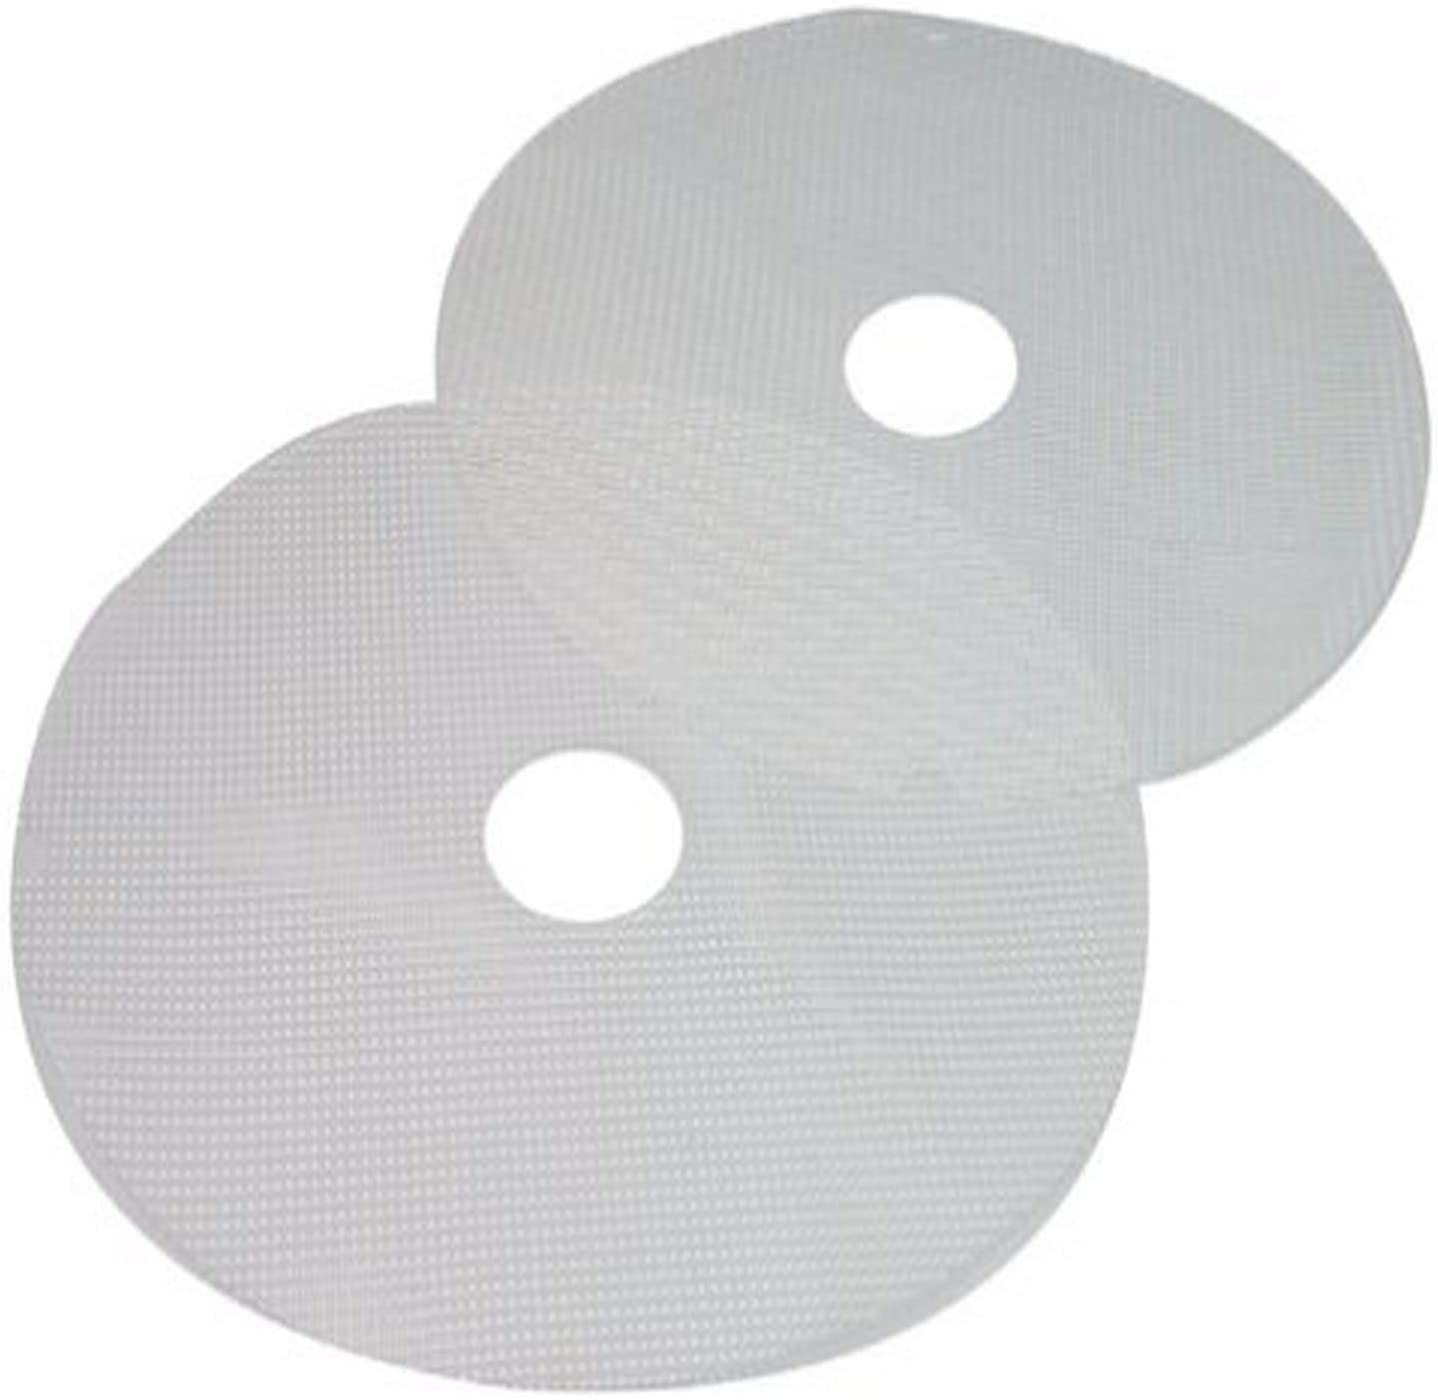 B00004W4VB Nesco MS-2-6 Clean-a-Screen for Dehydrators FD-1010/FD-1018P/FD-1020, Large, Set of 2, White 61kok8t3gKL